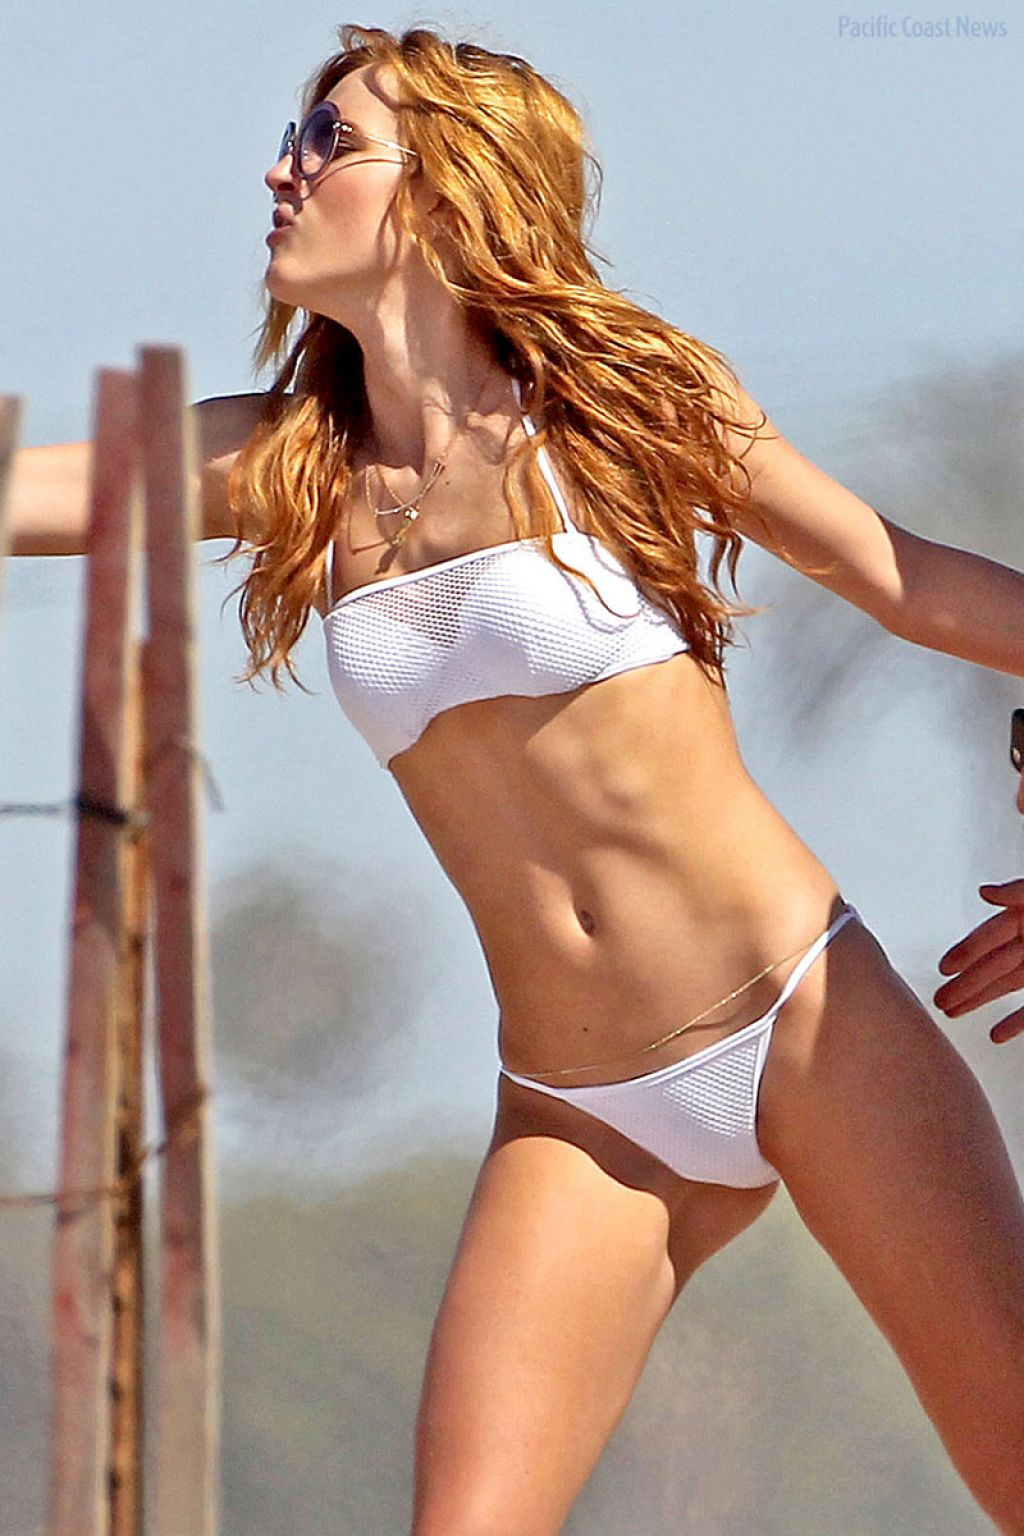 Bella thorne camel toe